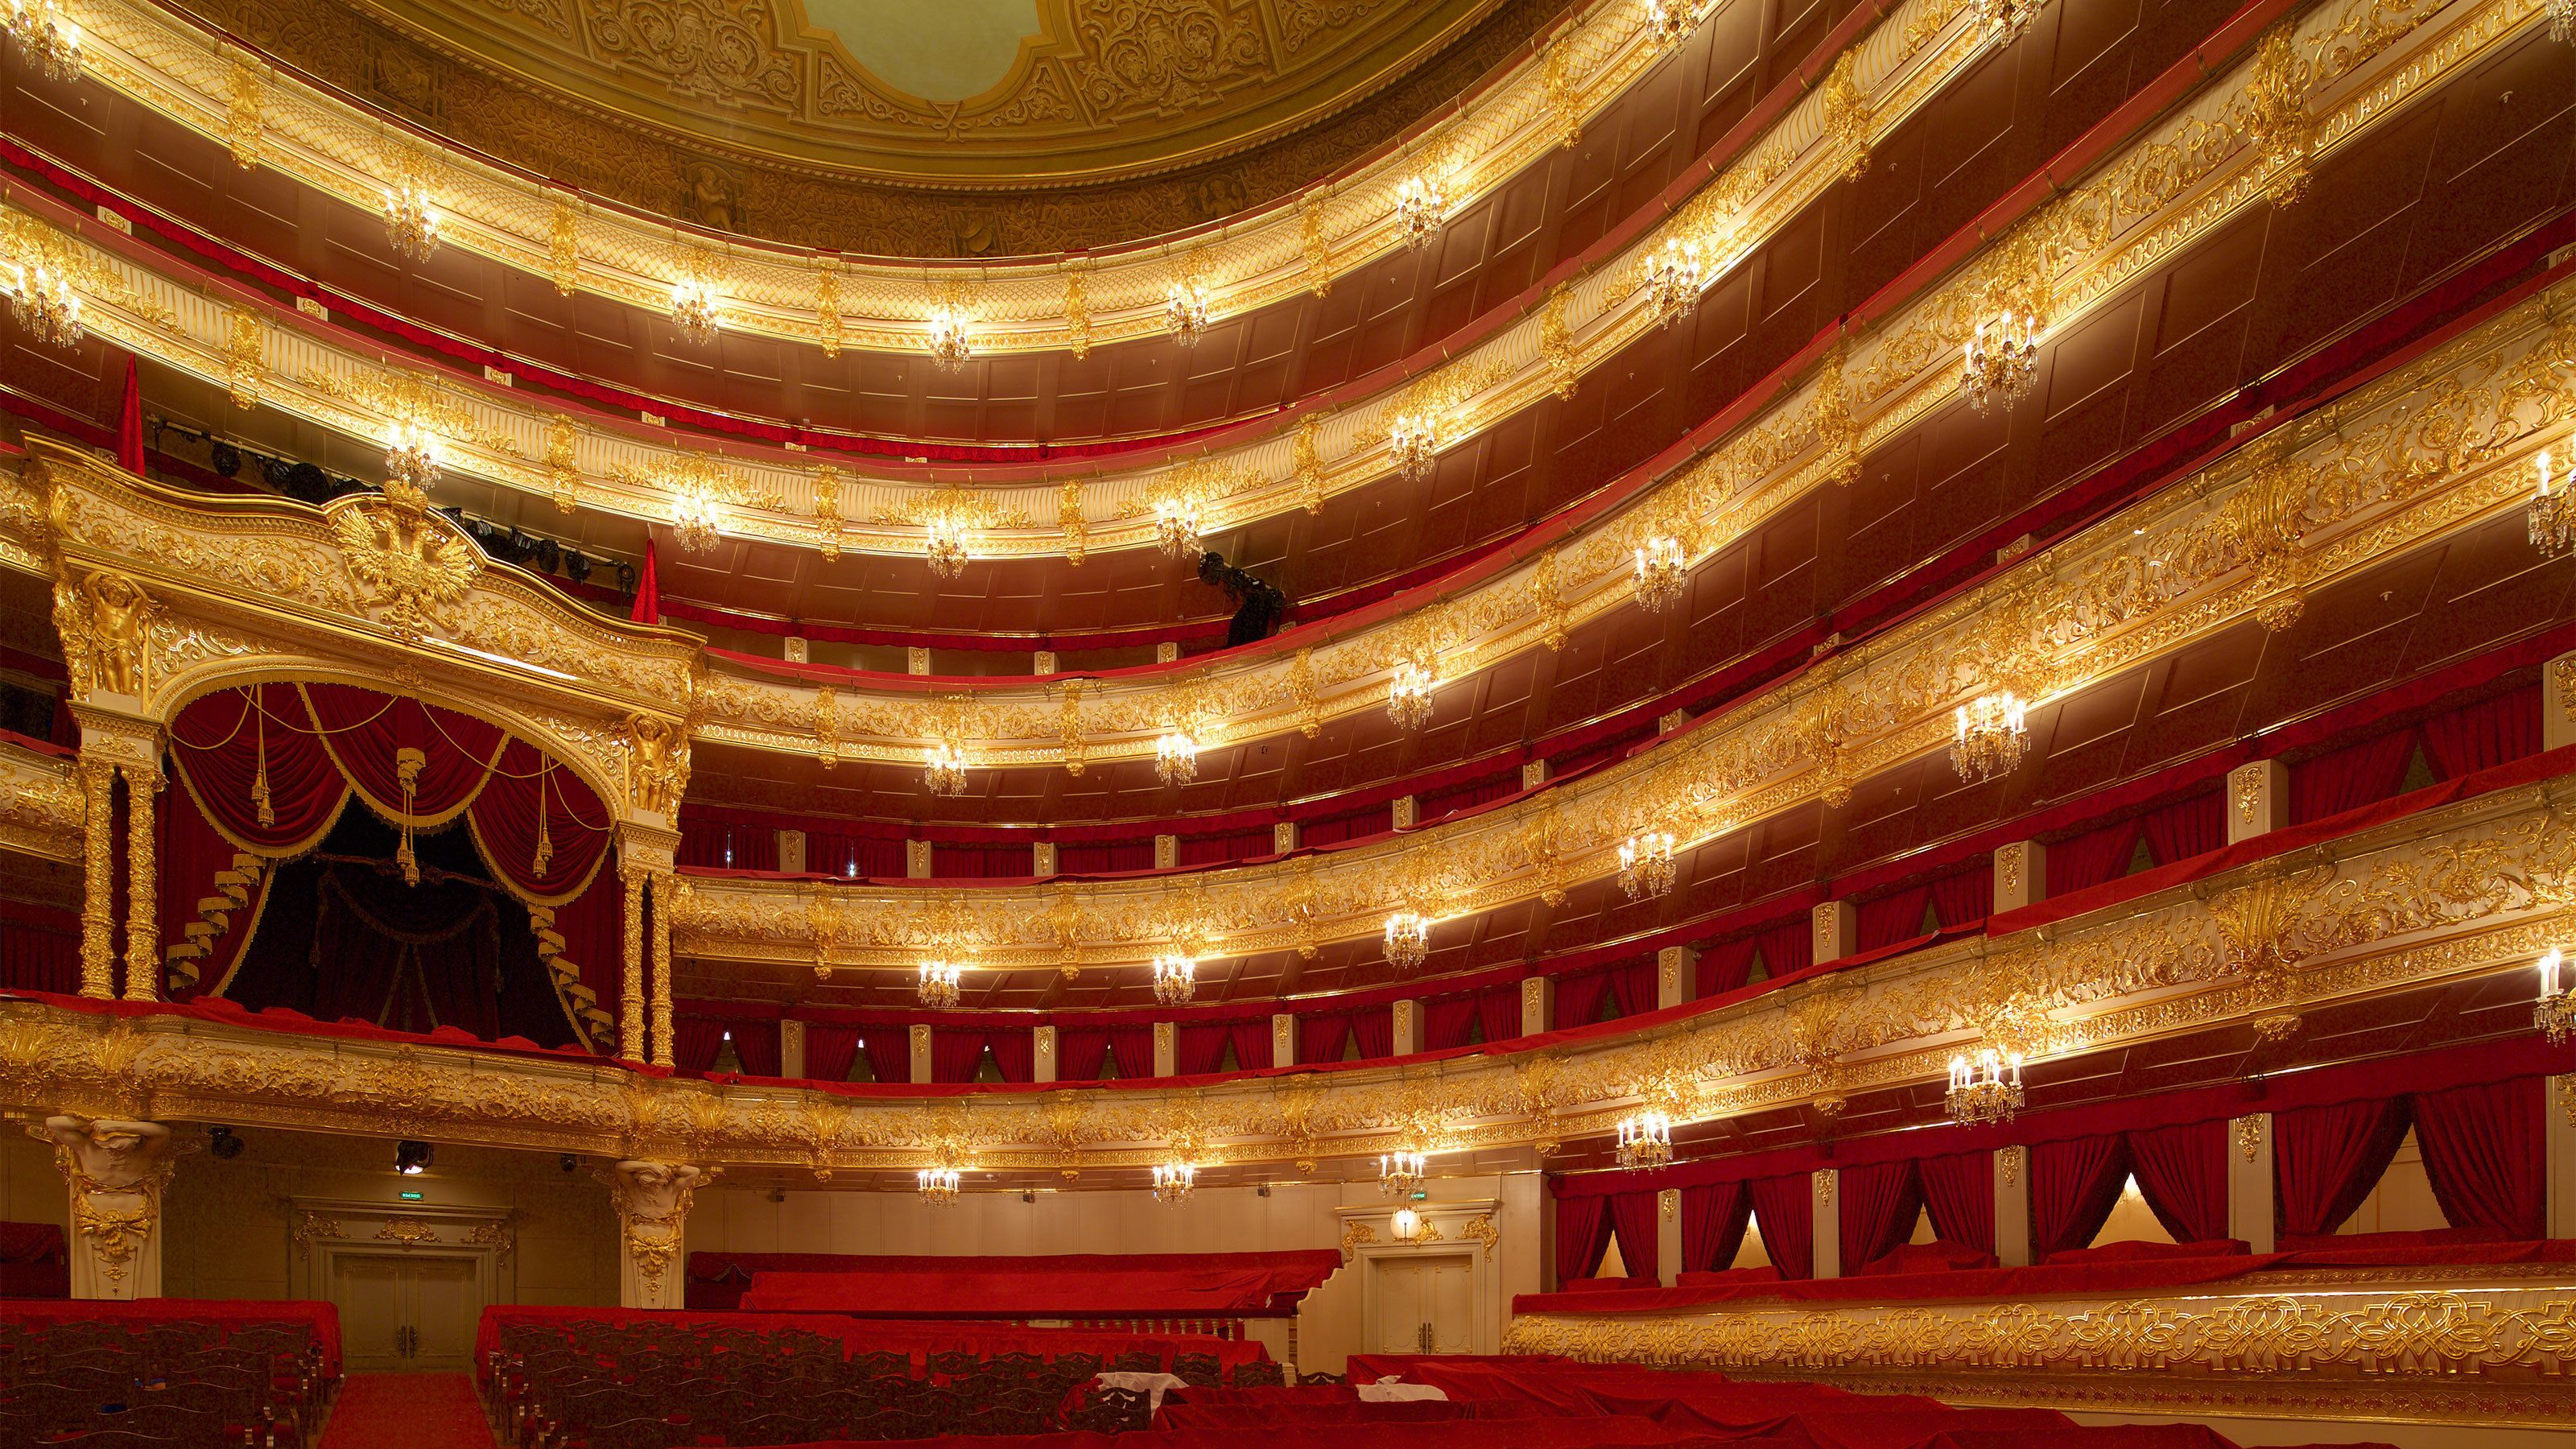 The lavish interior of a theater in Moscow